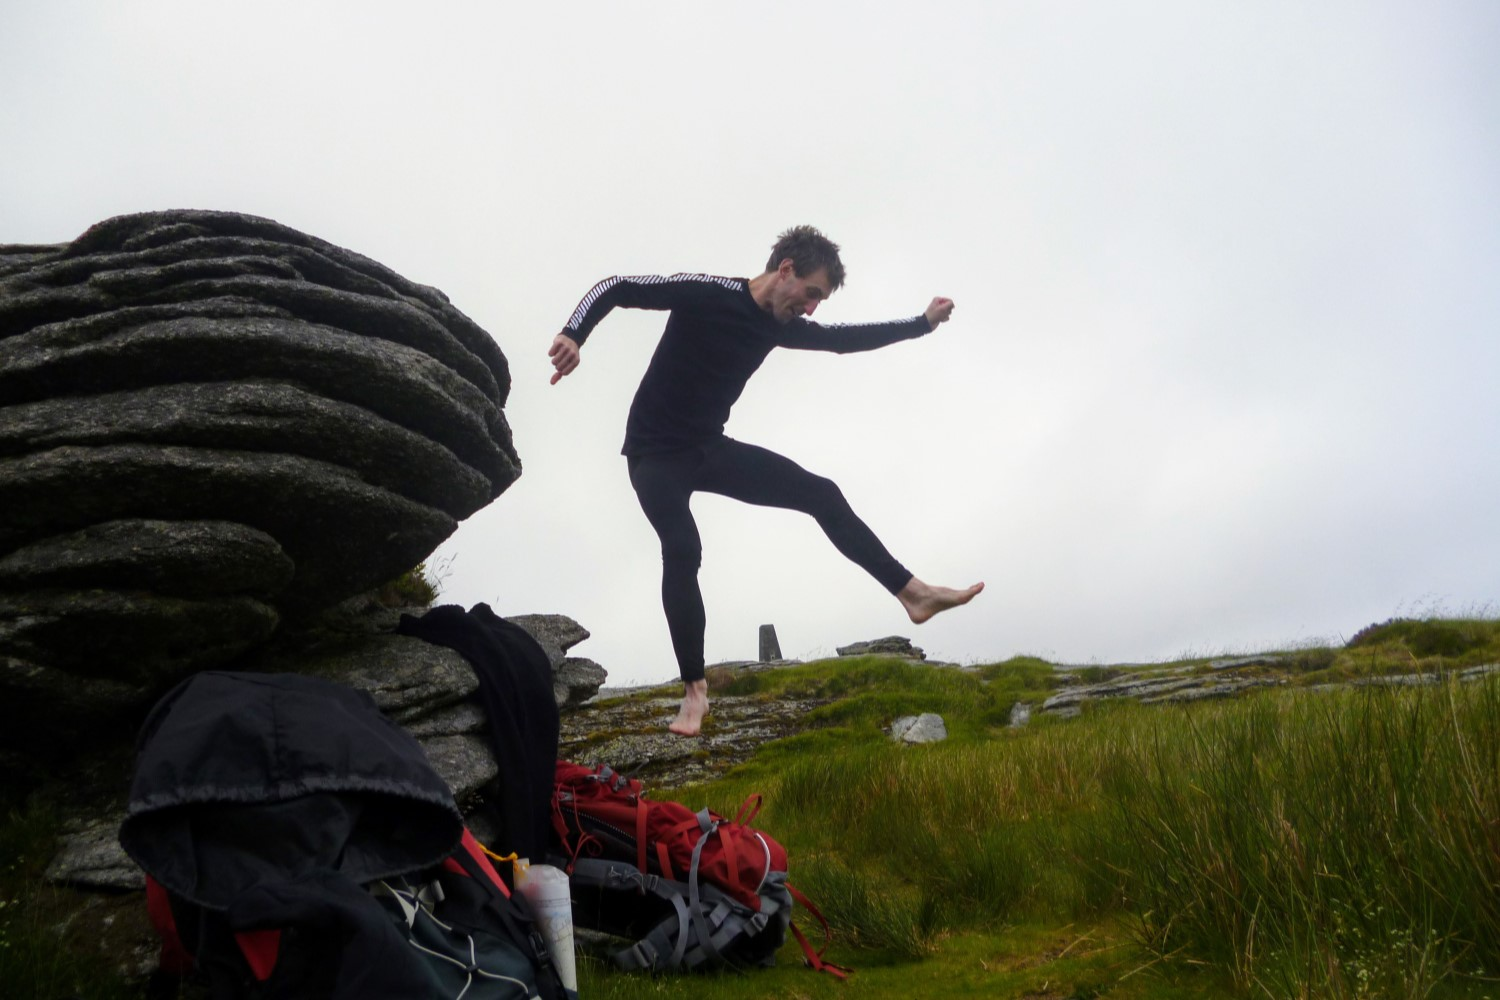 I'll sometimes carry a long sleeve baselayer for sleeping or for additional warmth in really cold conditions.